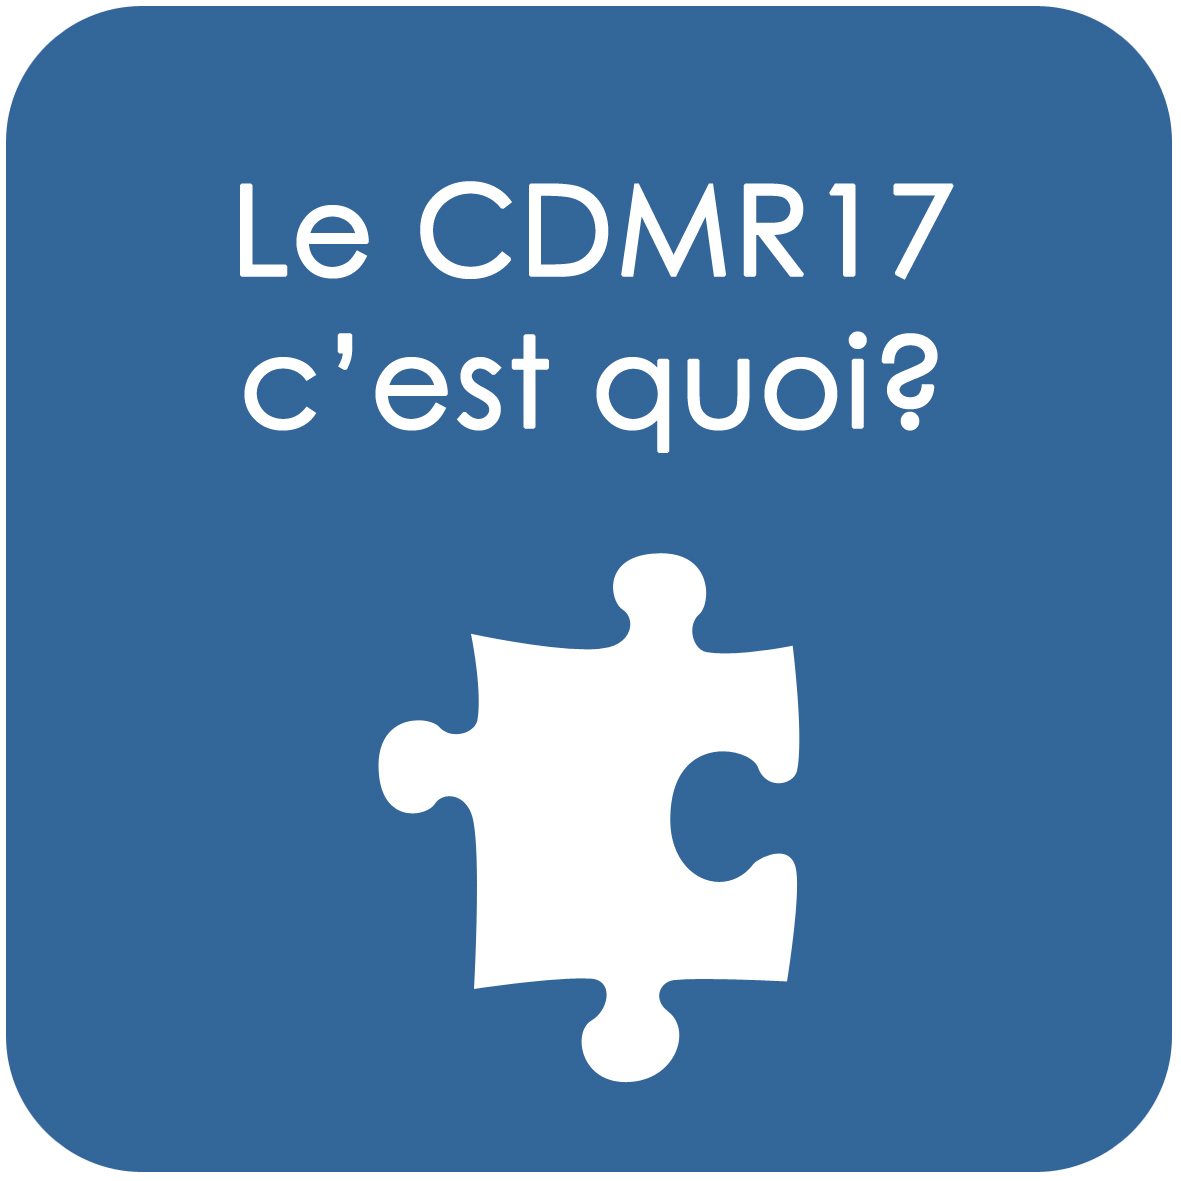 LE CDMR17 copie